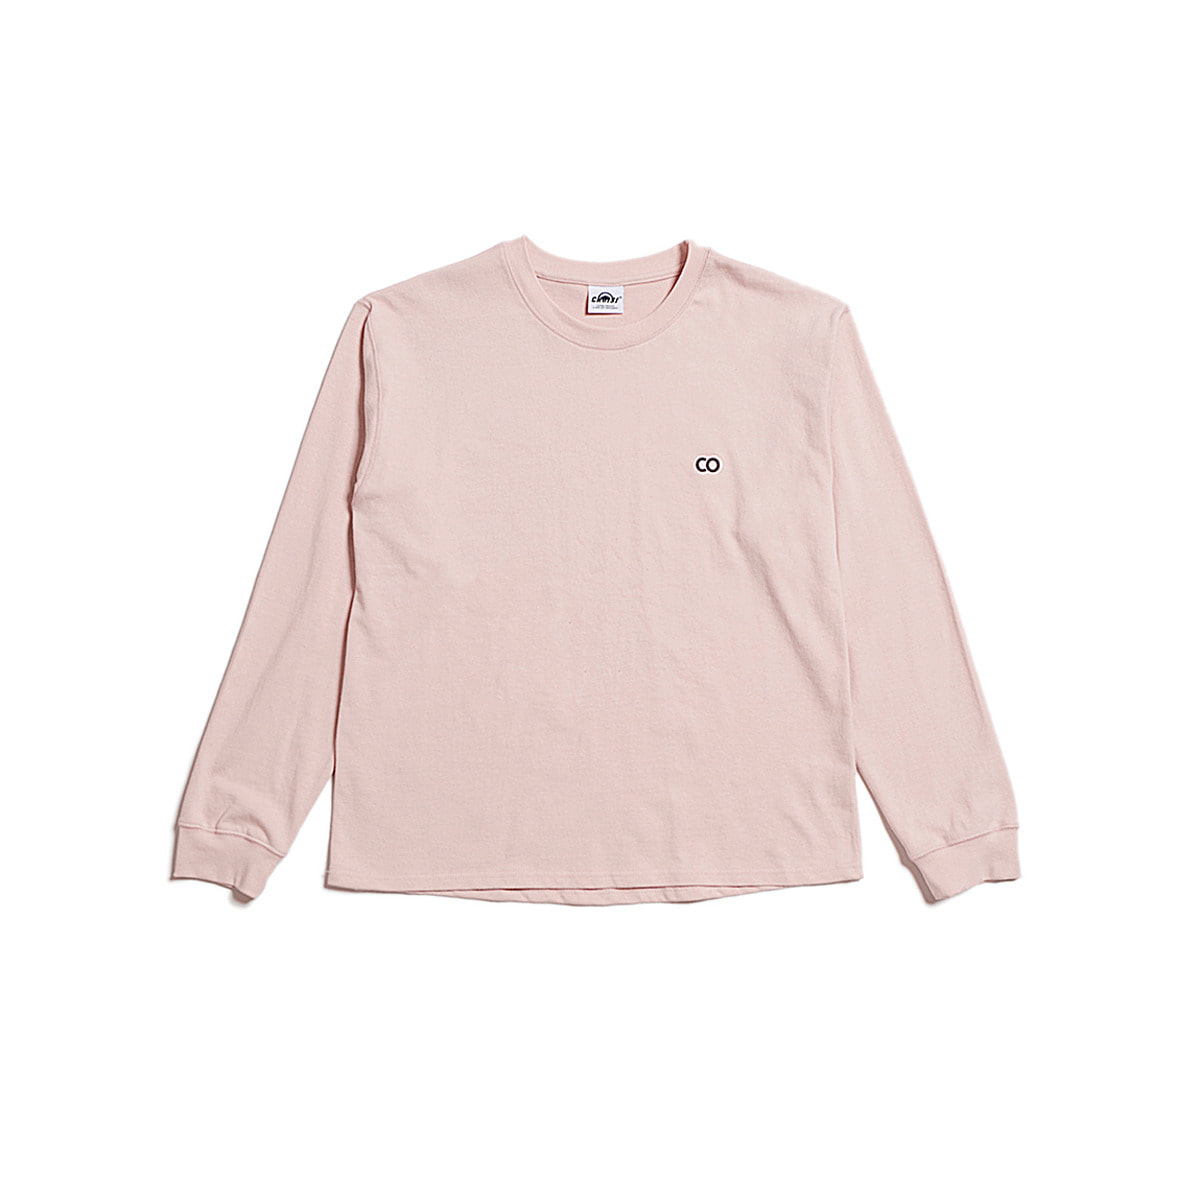 C.O Basic Long Sleeve, Light Pink